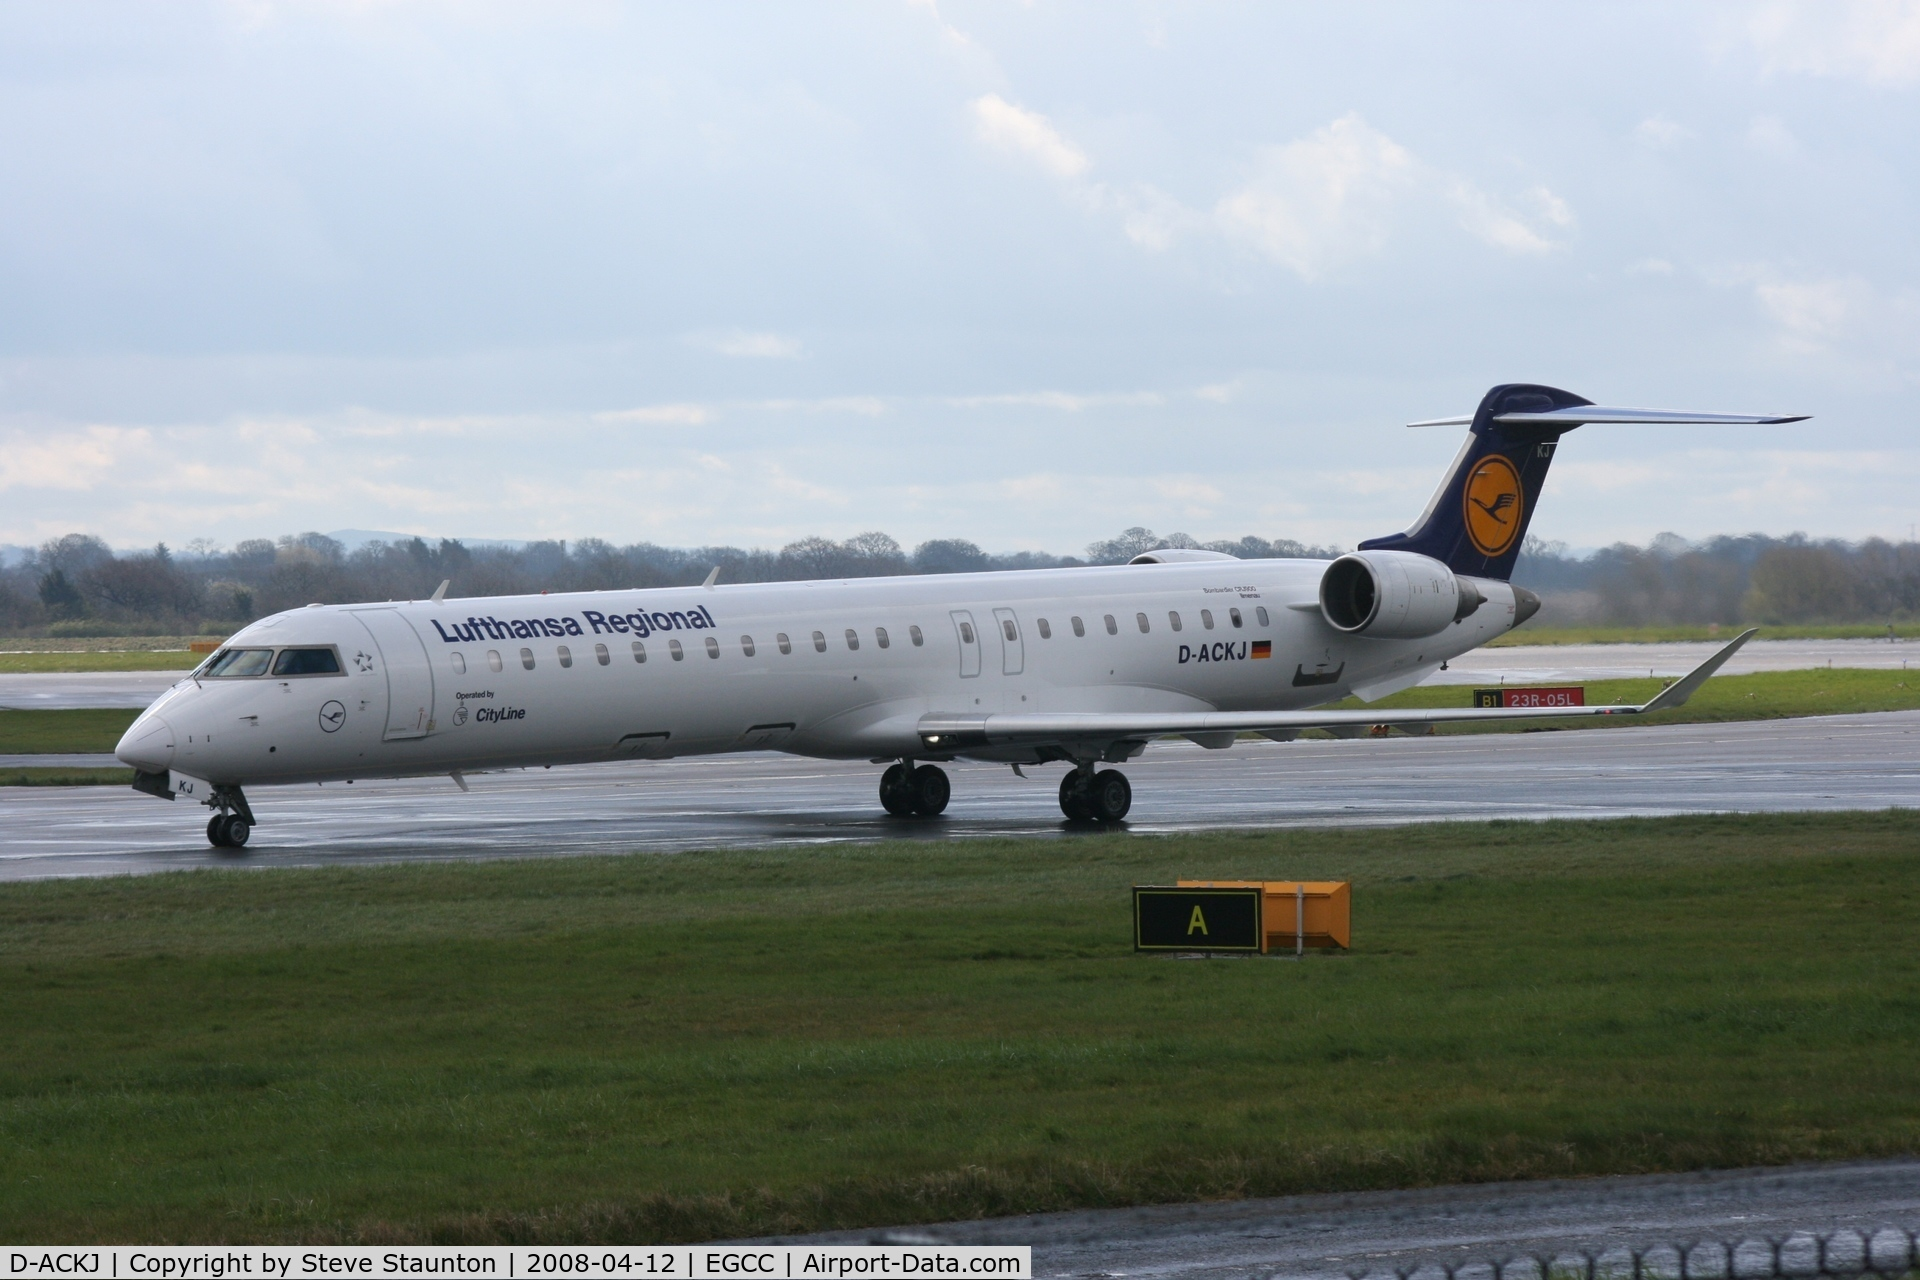 D-ACKJ, 2006 Bombardier CRJ-900LR (CL-600-2D24) C/N 15089, Taken at Manchester Airport on a typical showery April day